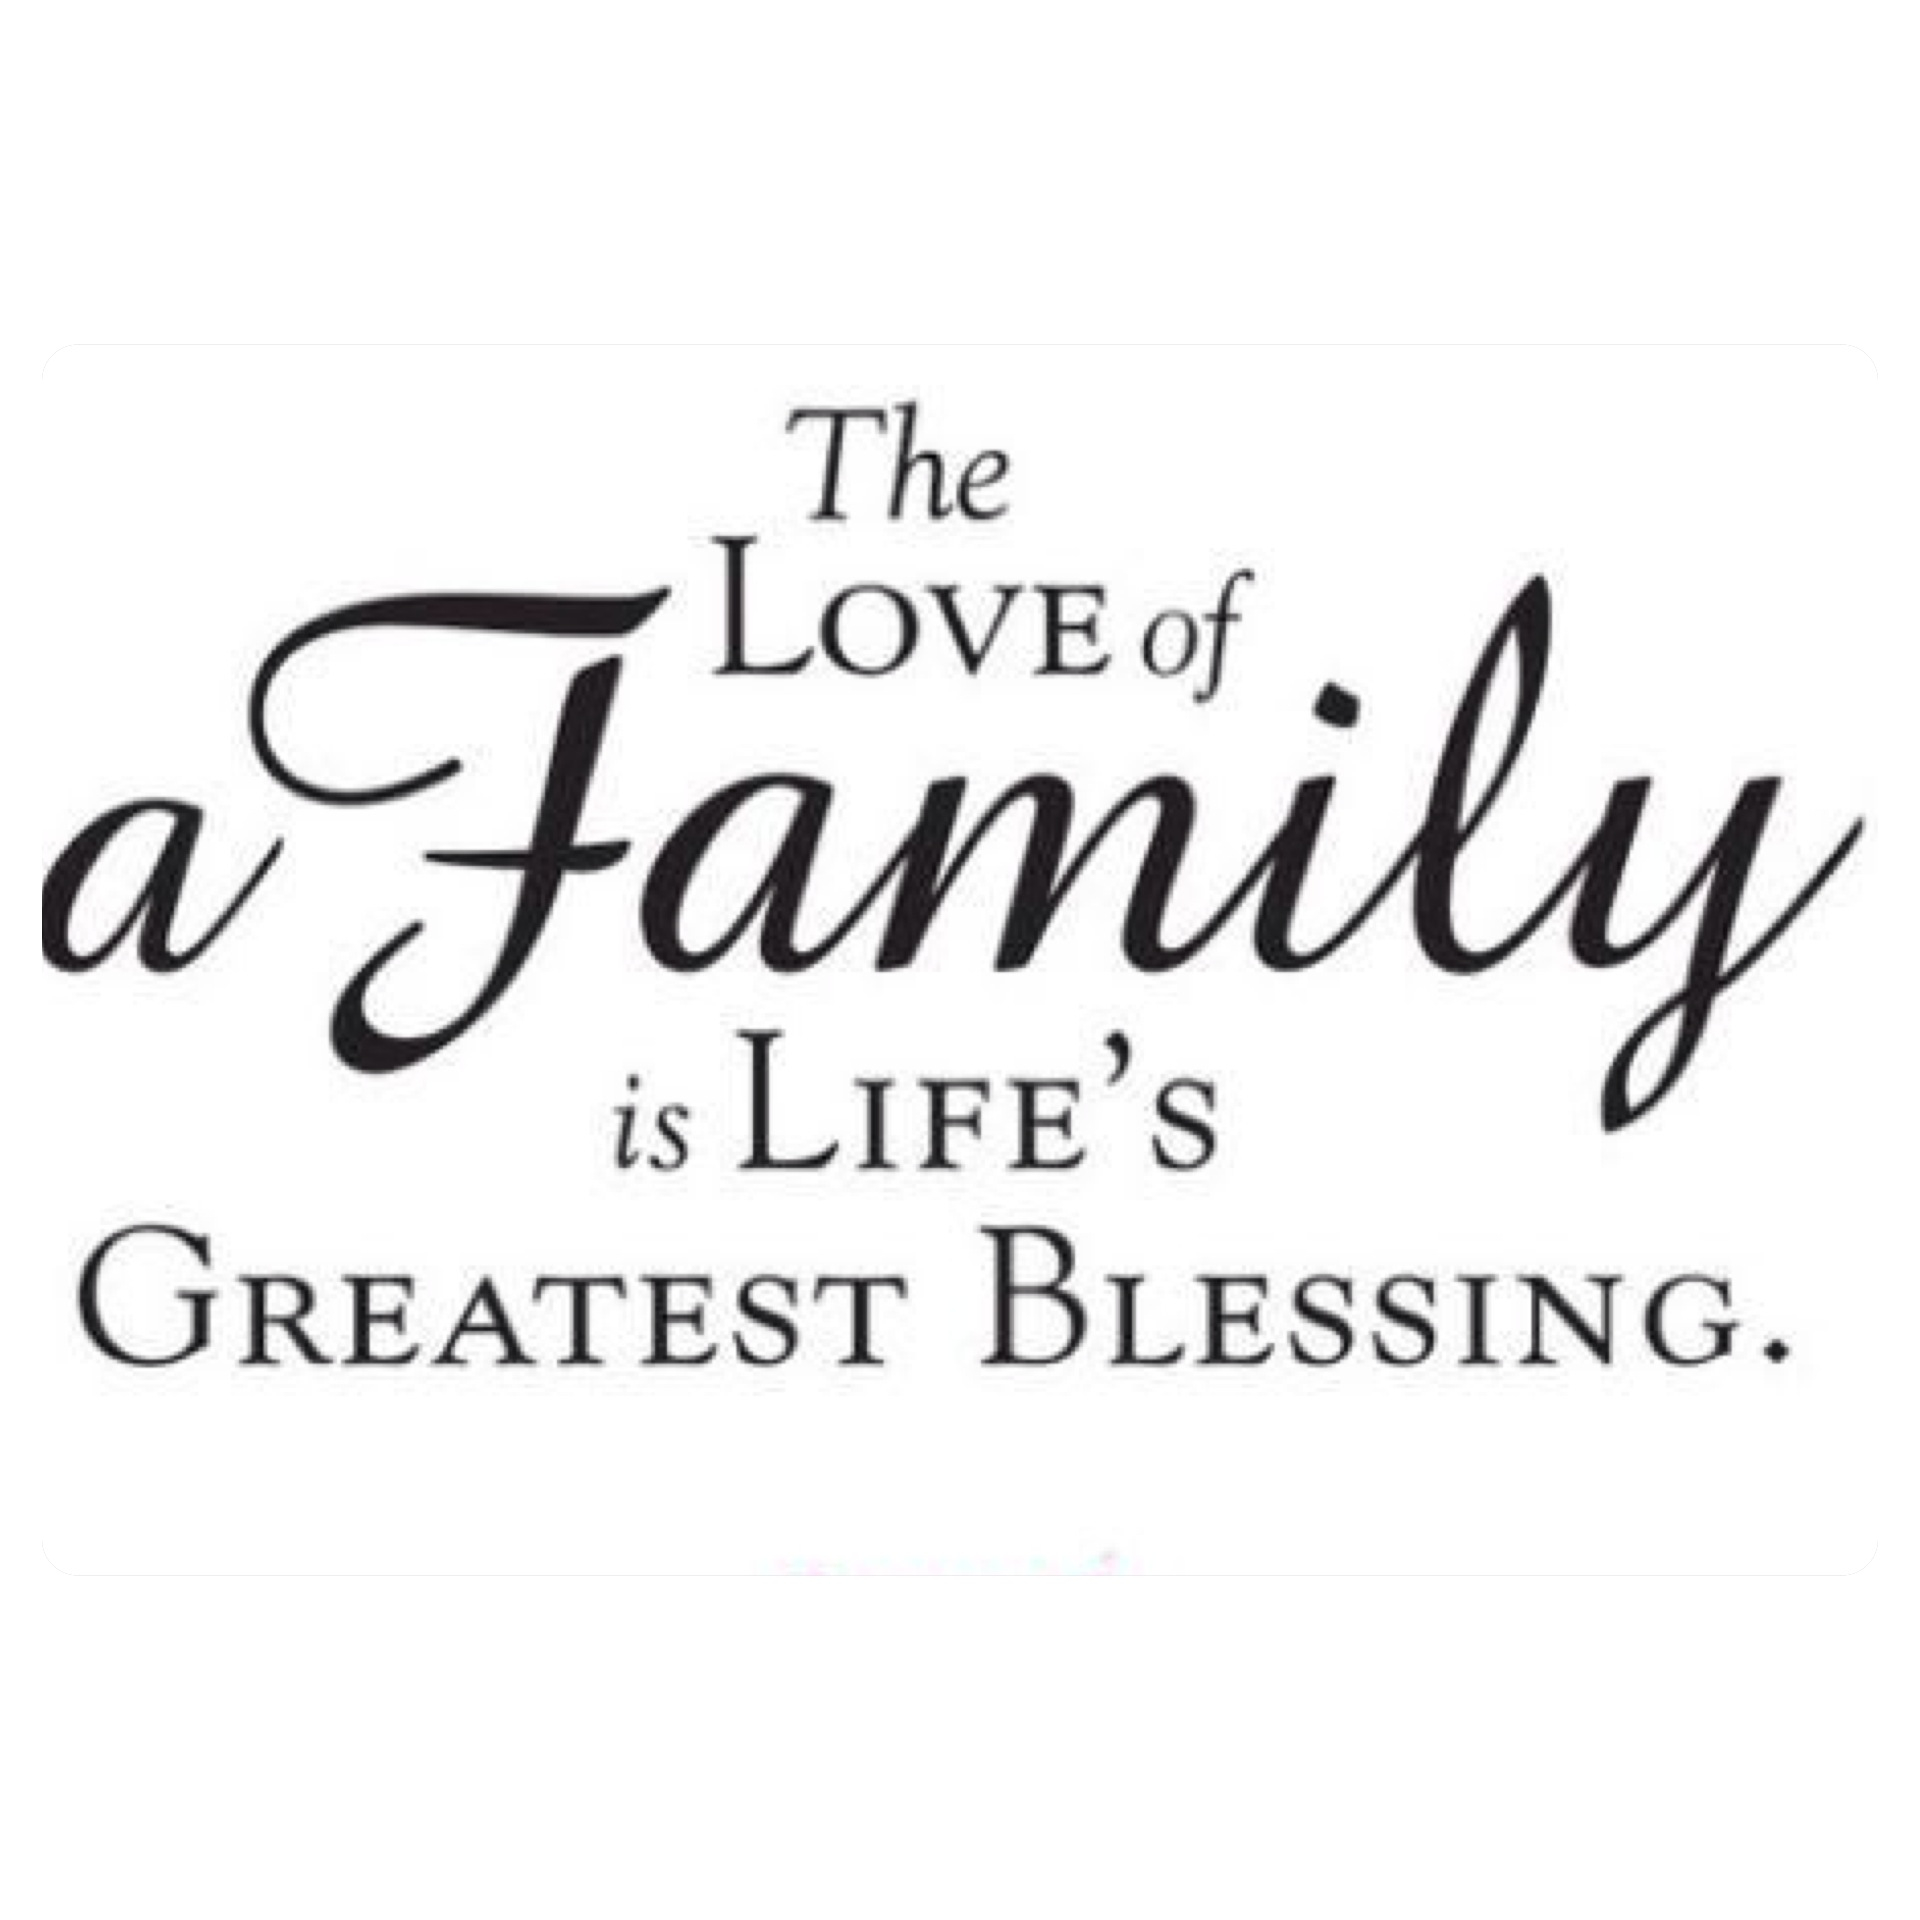 Quotes about family bonding